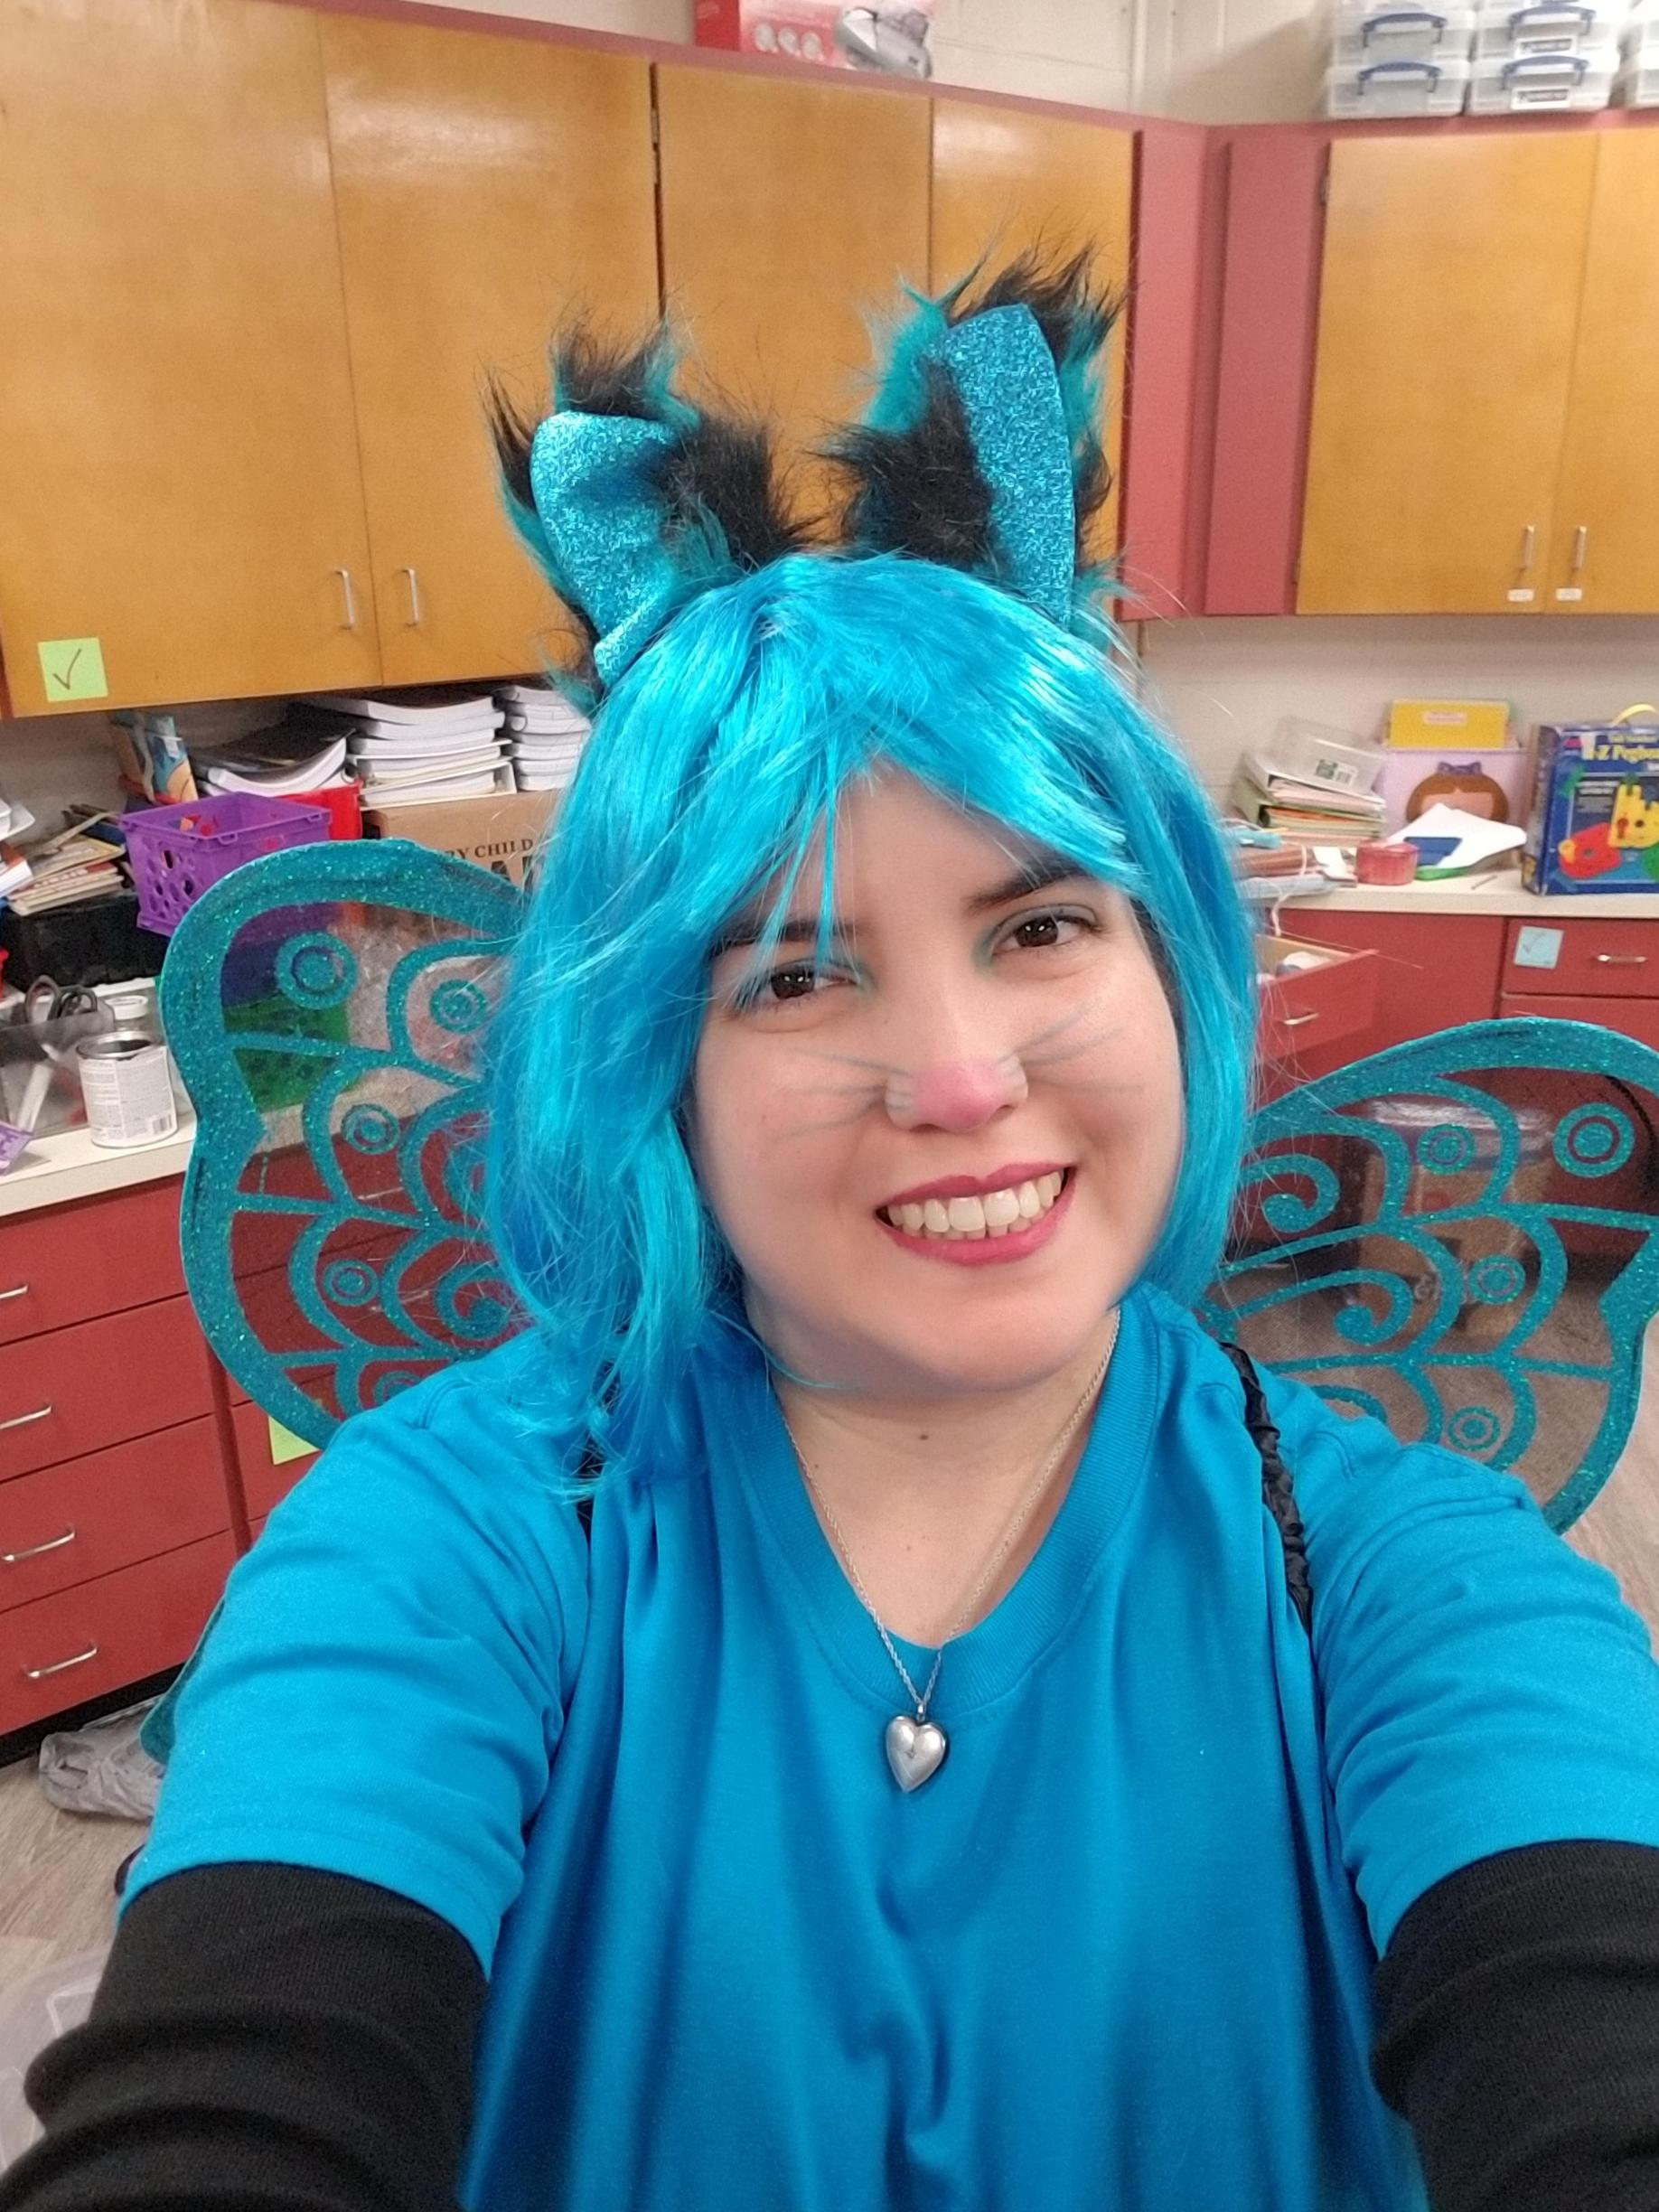 Mrs. Espinoza (Cat Fairy) is happy it's Friday as she has just completed her very first week of hosting a Scholastic Book Fair.